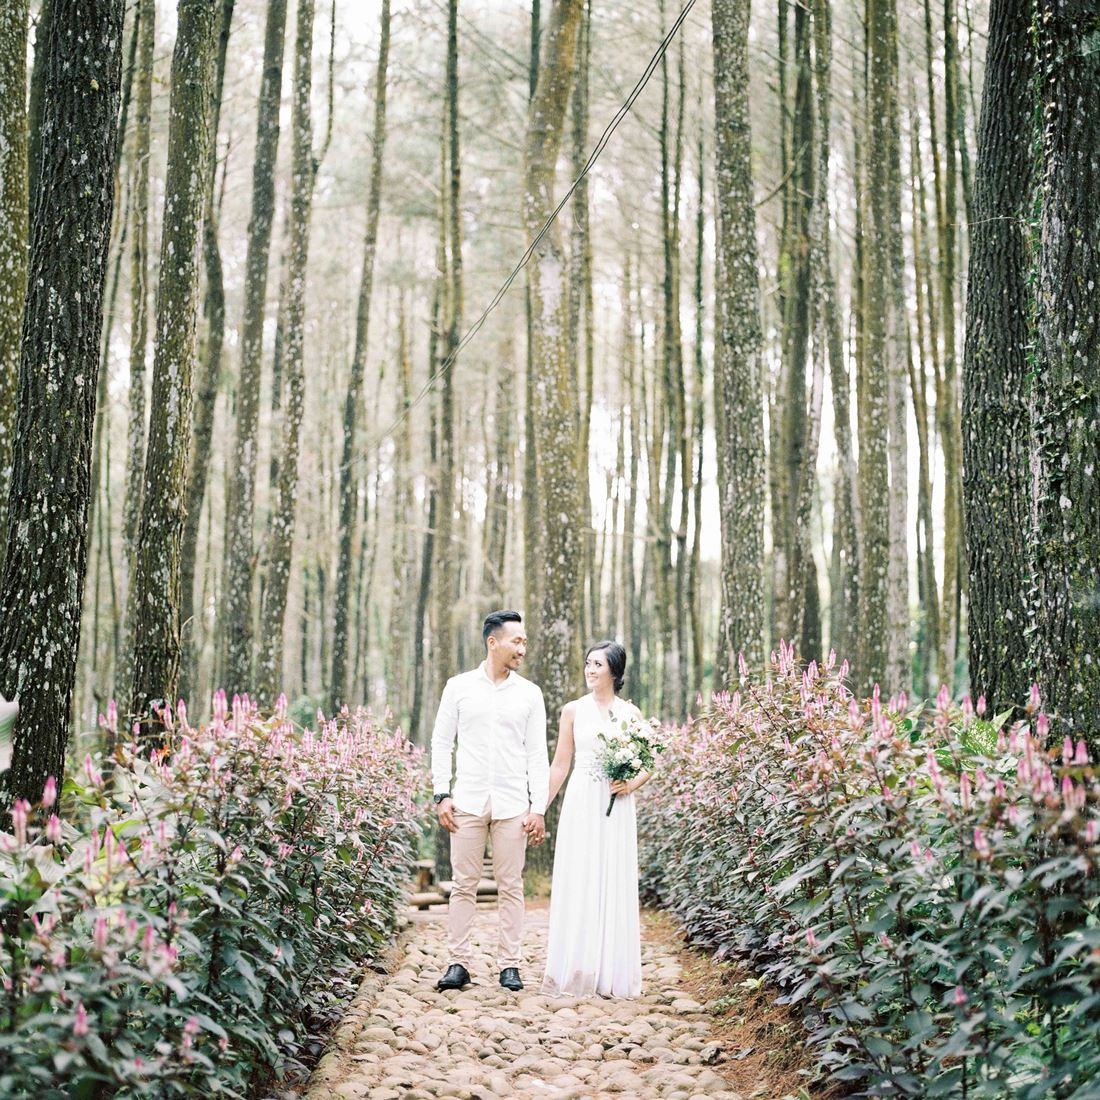 Pakpid : Being Different for Your Big Day by Enjoying The elements of Surprise With Analog Camera